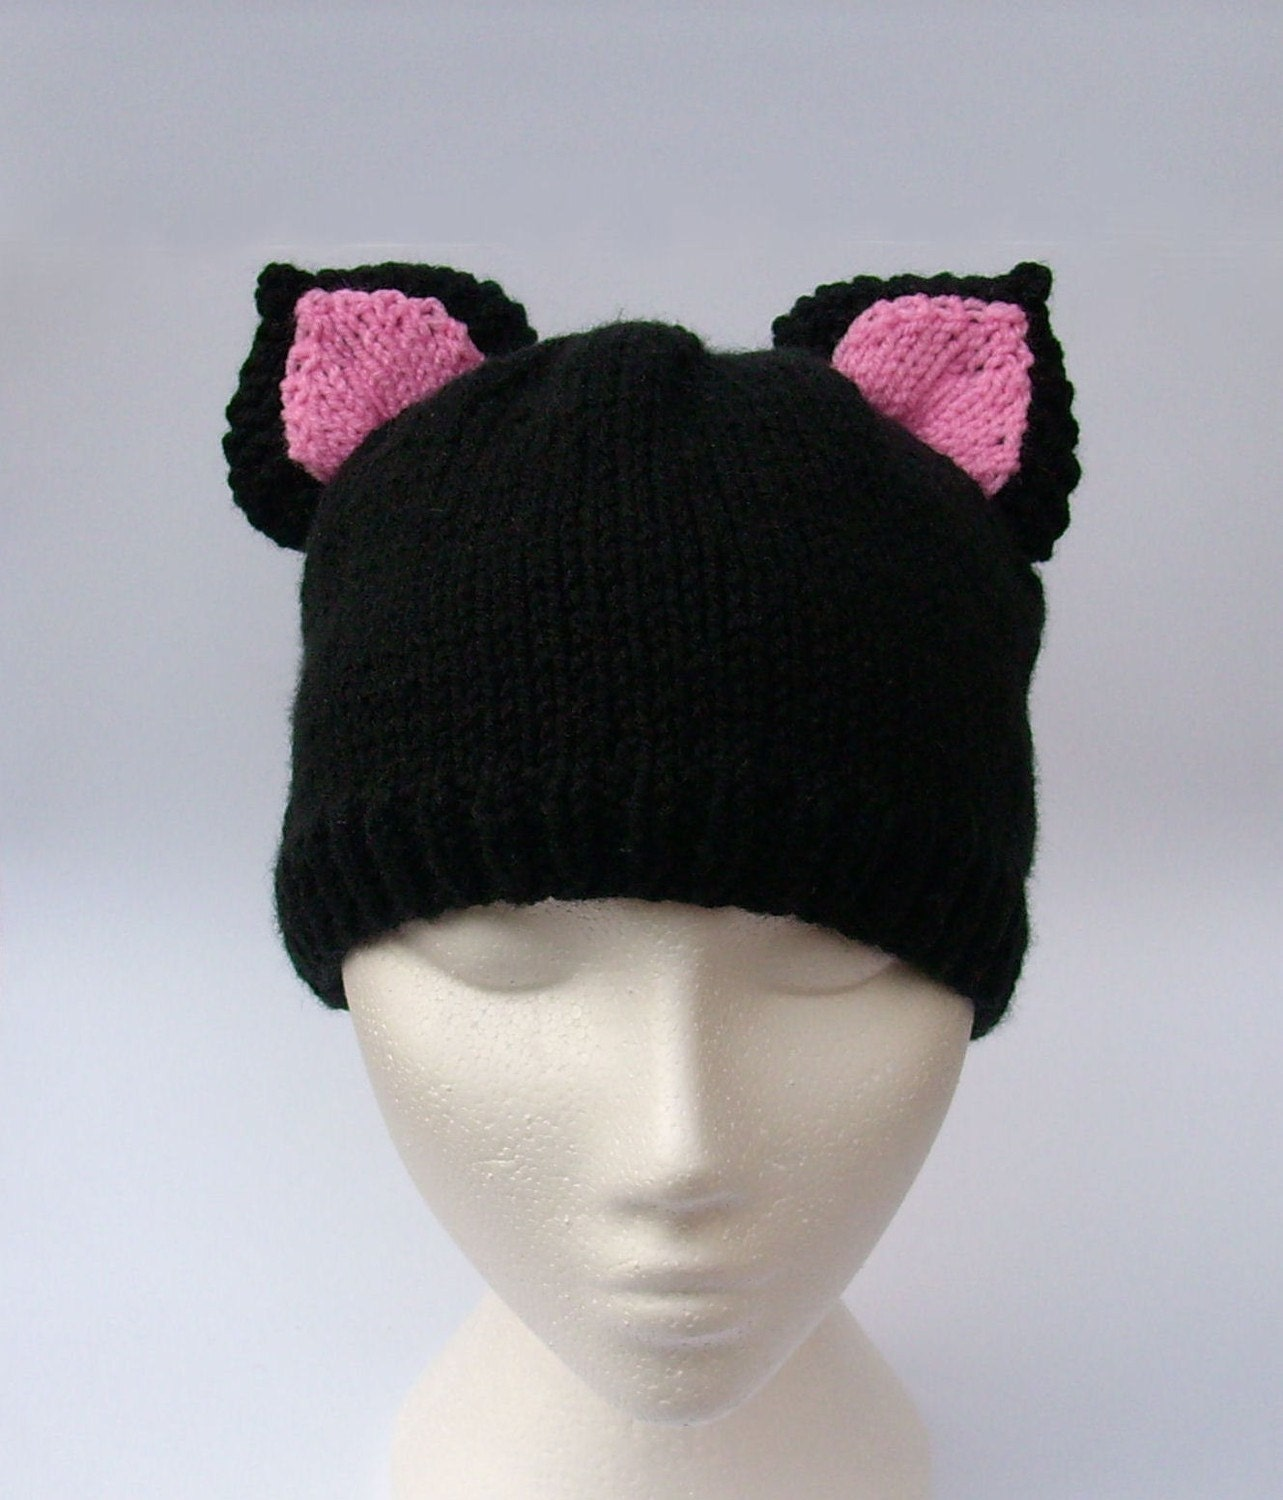 Halloween Cat Hat, Legendog Winter Warm Knitting Wool Cute Fox Ear Dog Cat Costume Hat Pet Costume Cap Christams Cosplay Party Outfit Add To Cart There is a problem adding to cart.